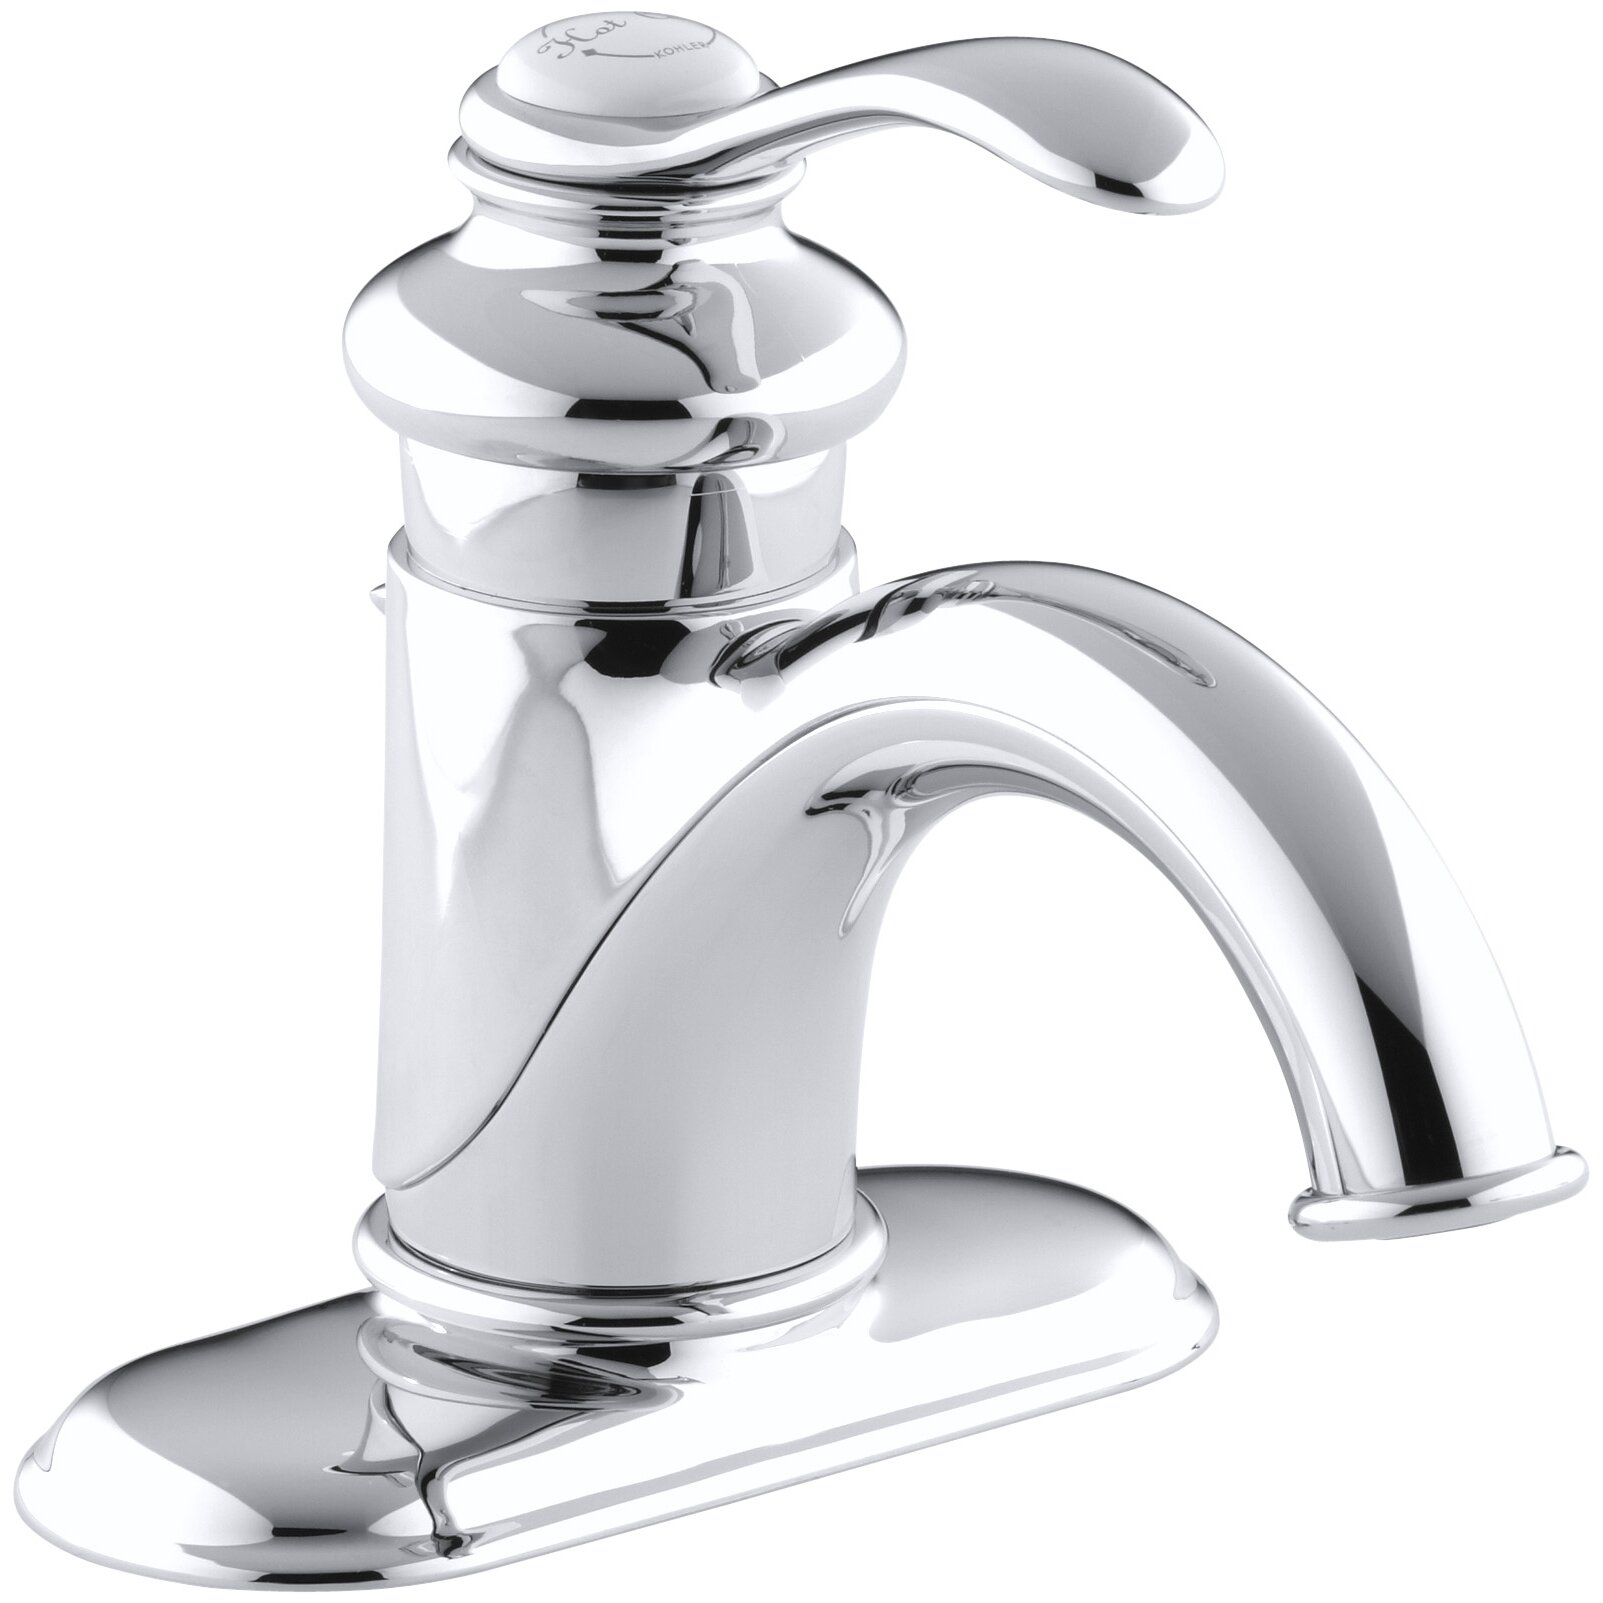 ... Centerset Bathroom Sink Faucet with Single Lever Handle by Kohler